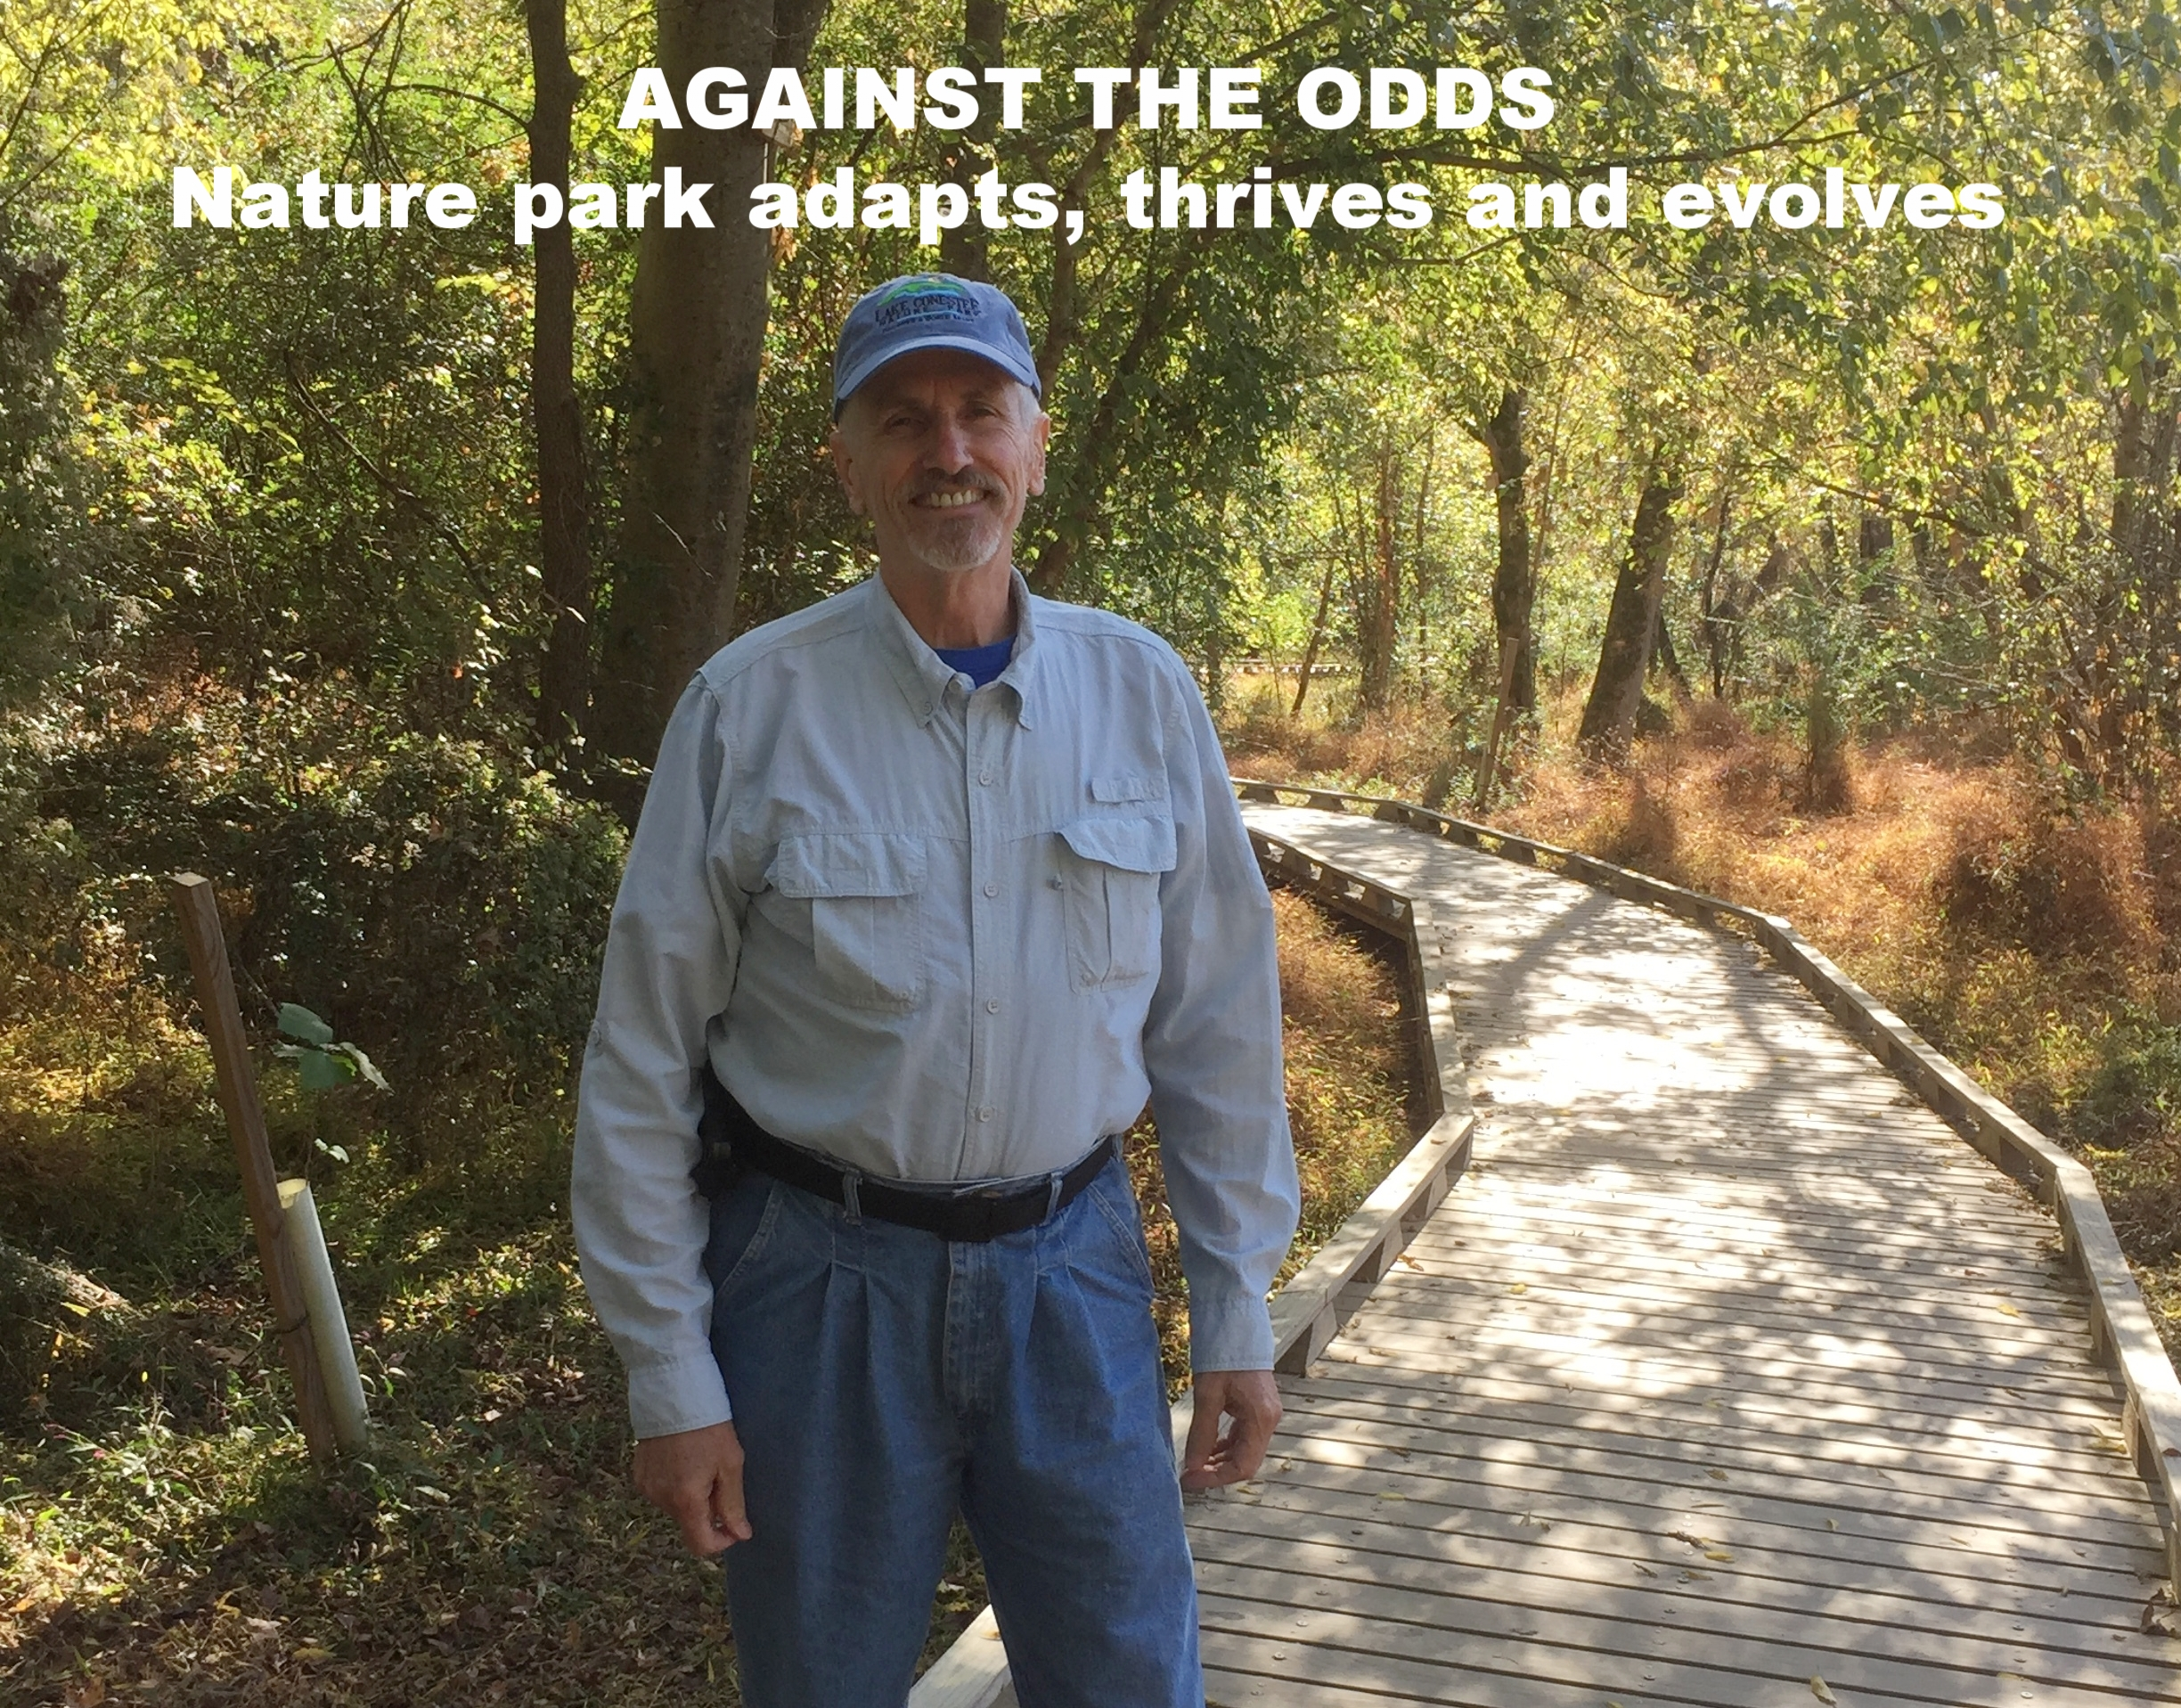 A nature preserve thrives against the odds